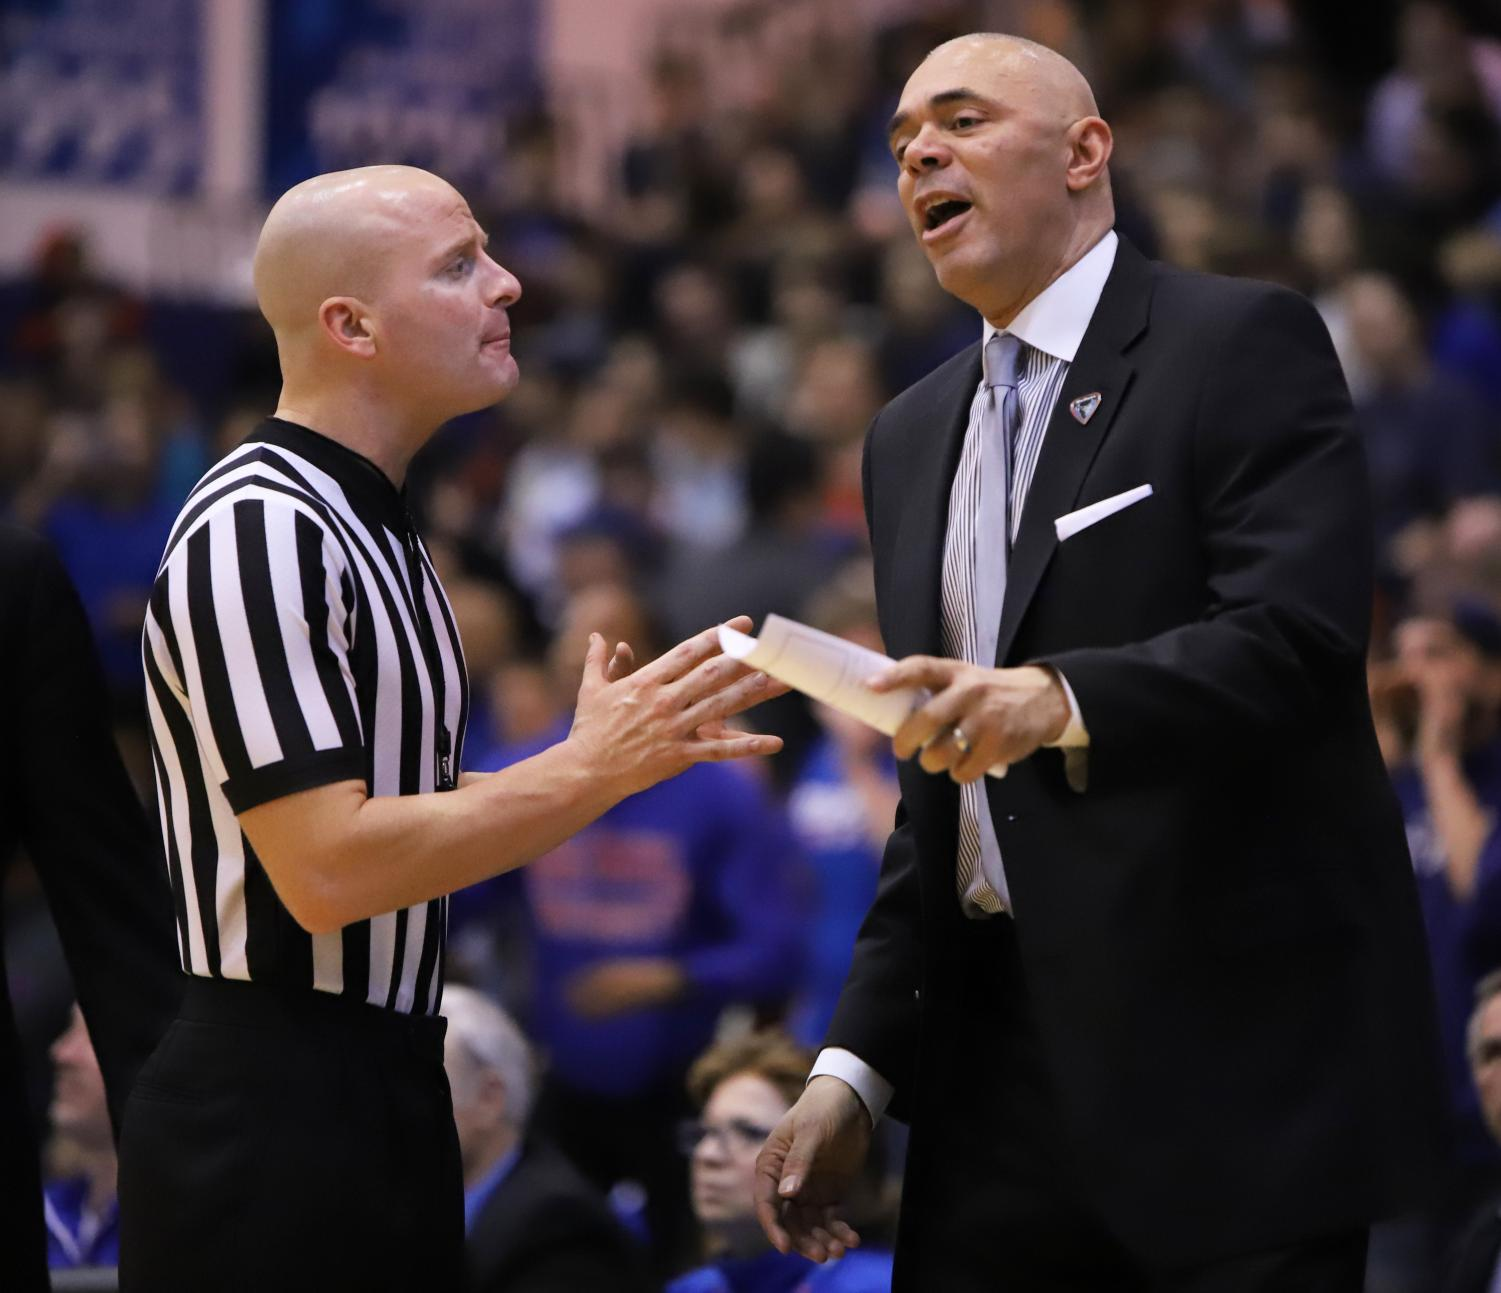 DePaul+head+coach+Dave+Leitao+talks+with+an+official+during+game+two+of+the+CBI+finals+Wednesday+night+at+McGrath-Phillips+Arena.+The+Blue+Demons+won+the+game+in+overtime+100-96.+Alexa+Sandler+%7C+The+DePaulia